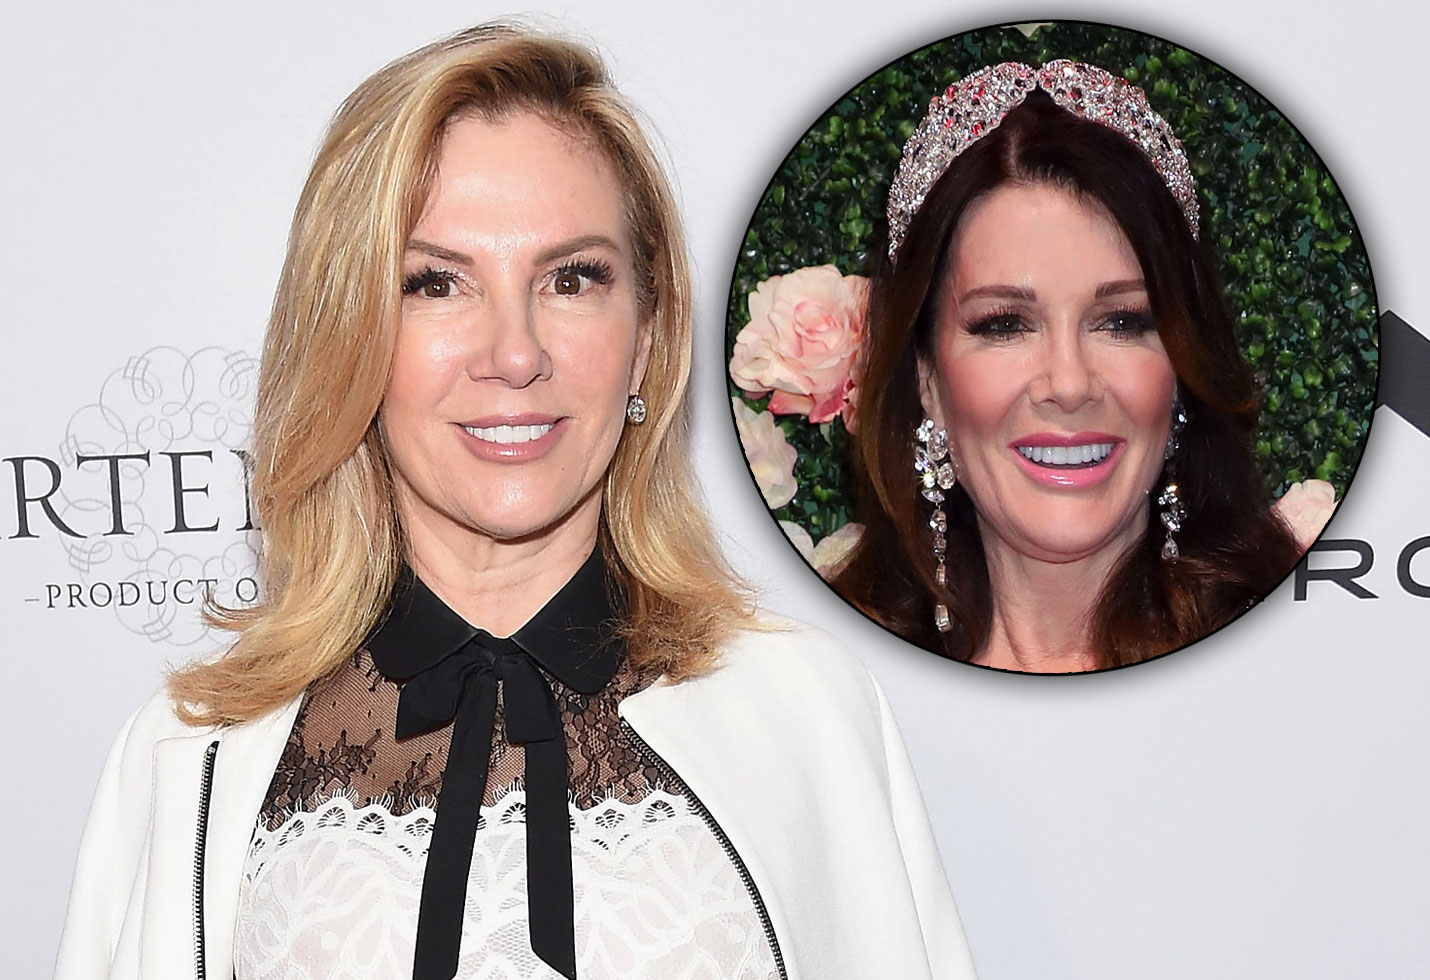 Ramona singer new teeth lisa vanderpump wwhl